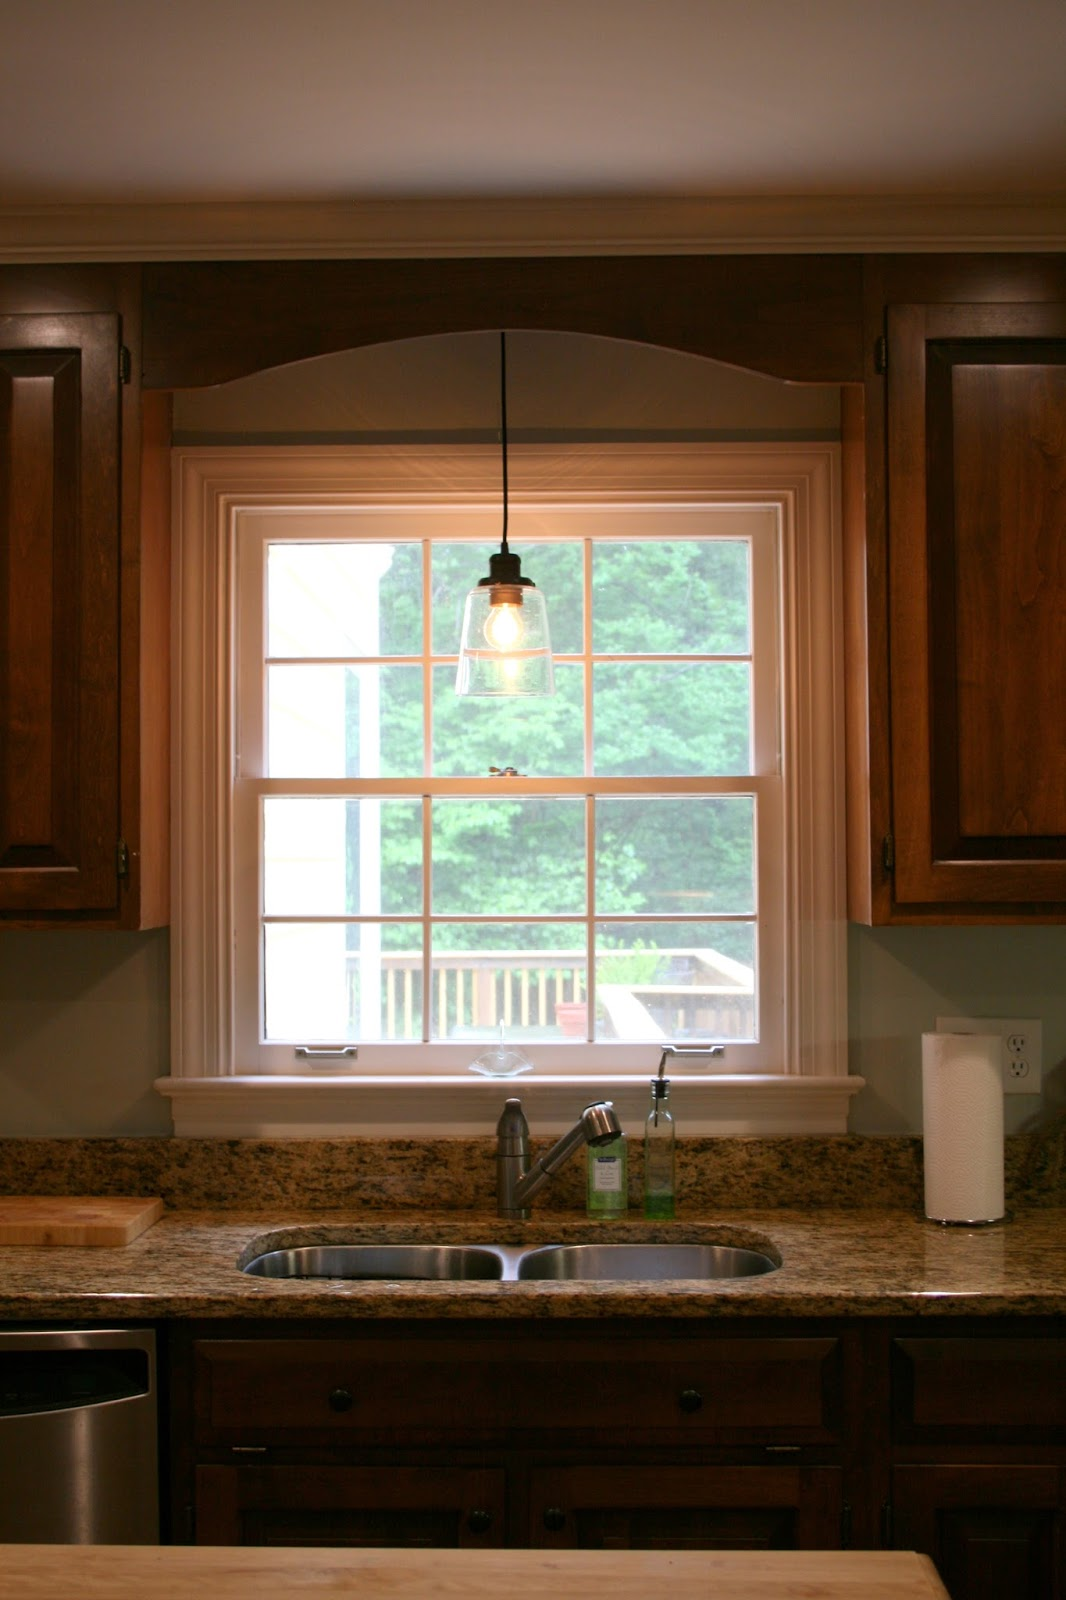 Richmond Real Estate Mom: Updating a Kitchen without ...